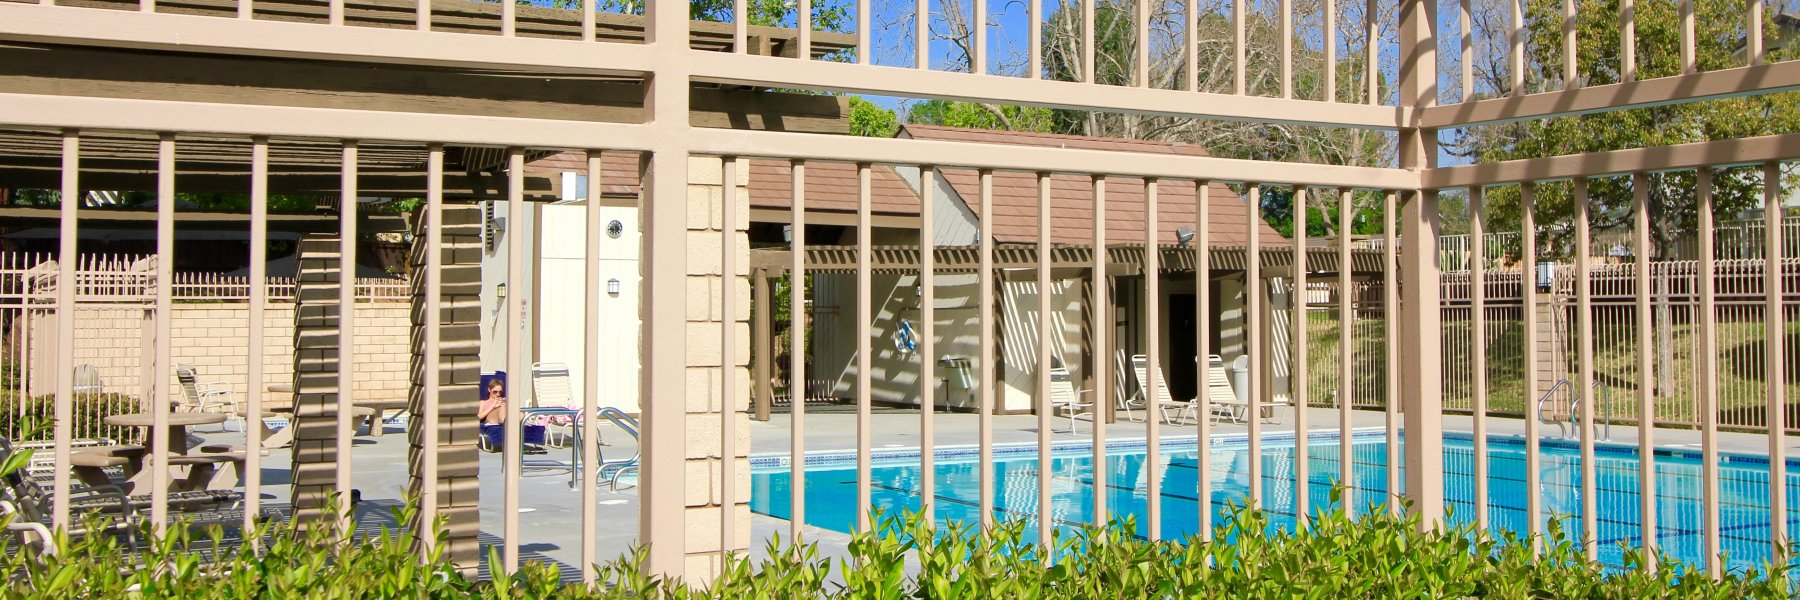 Country Hills is a community of homes in Brea California